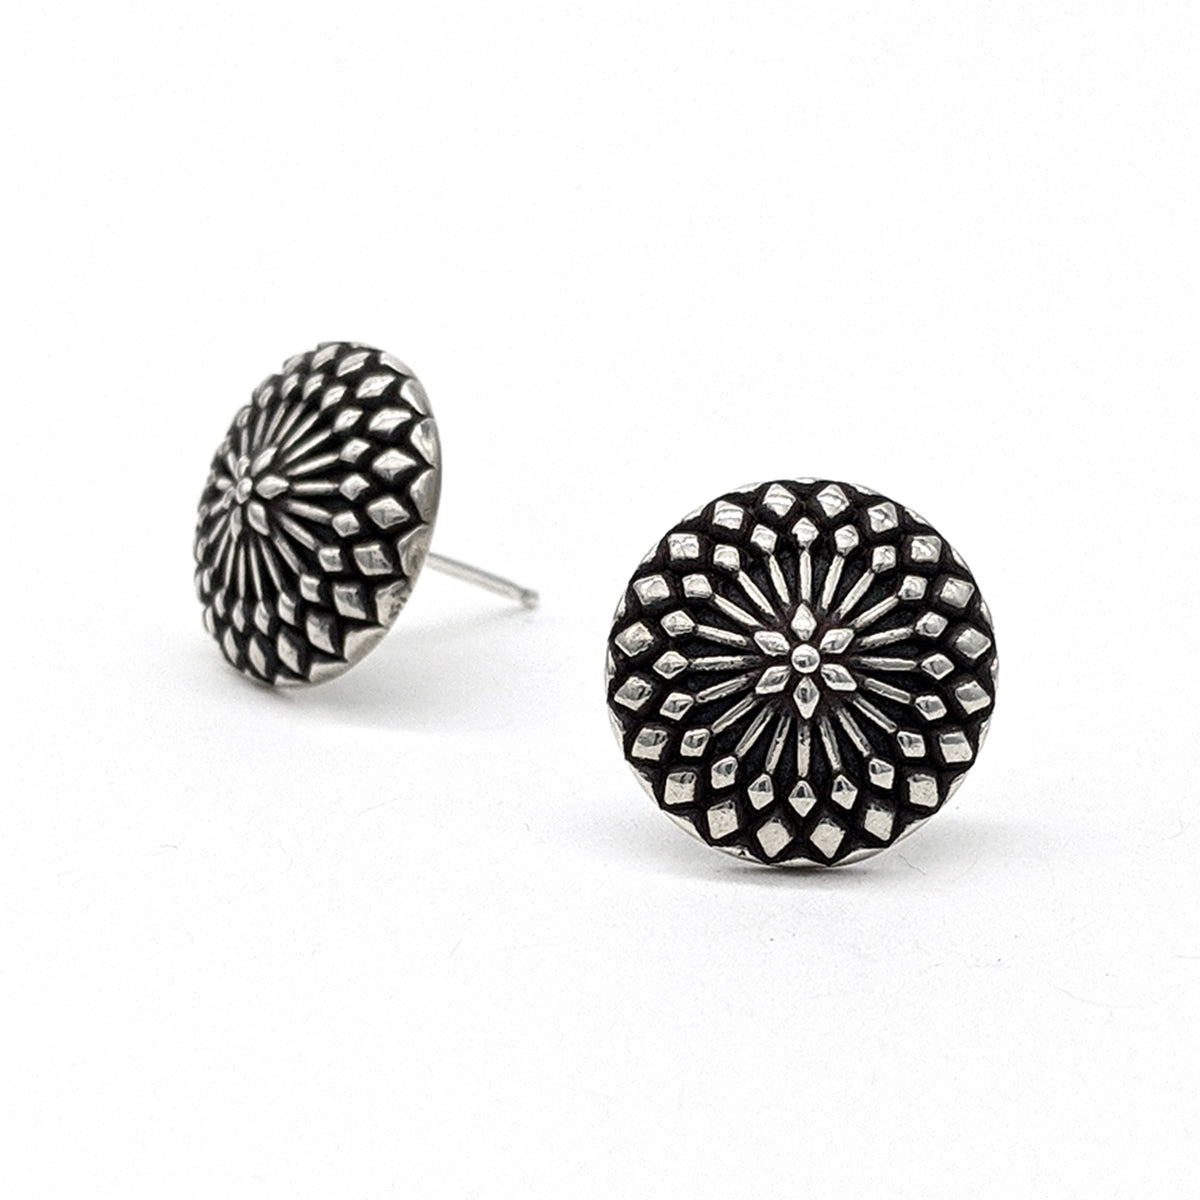 Sterling silver domed stud earrings with a whorl pattern of diamond shapes, highlighted by an oxidized background.